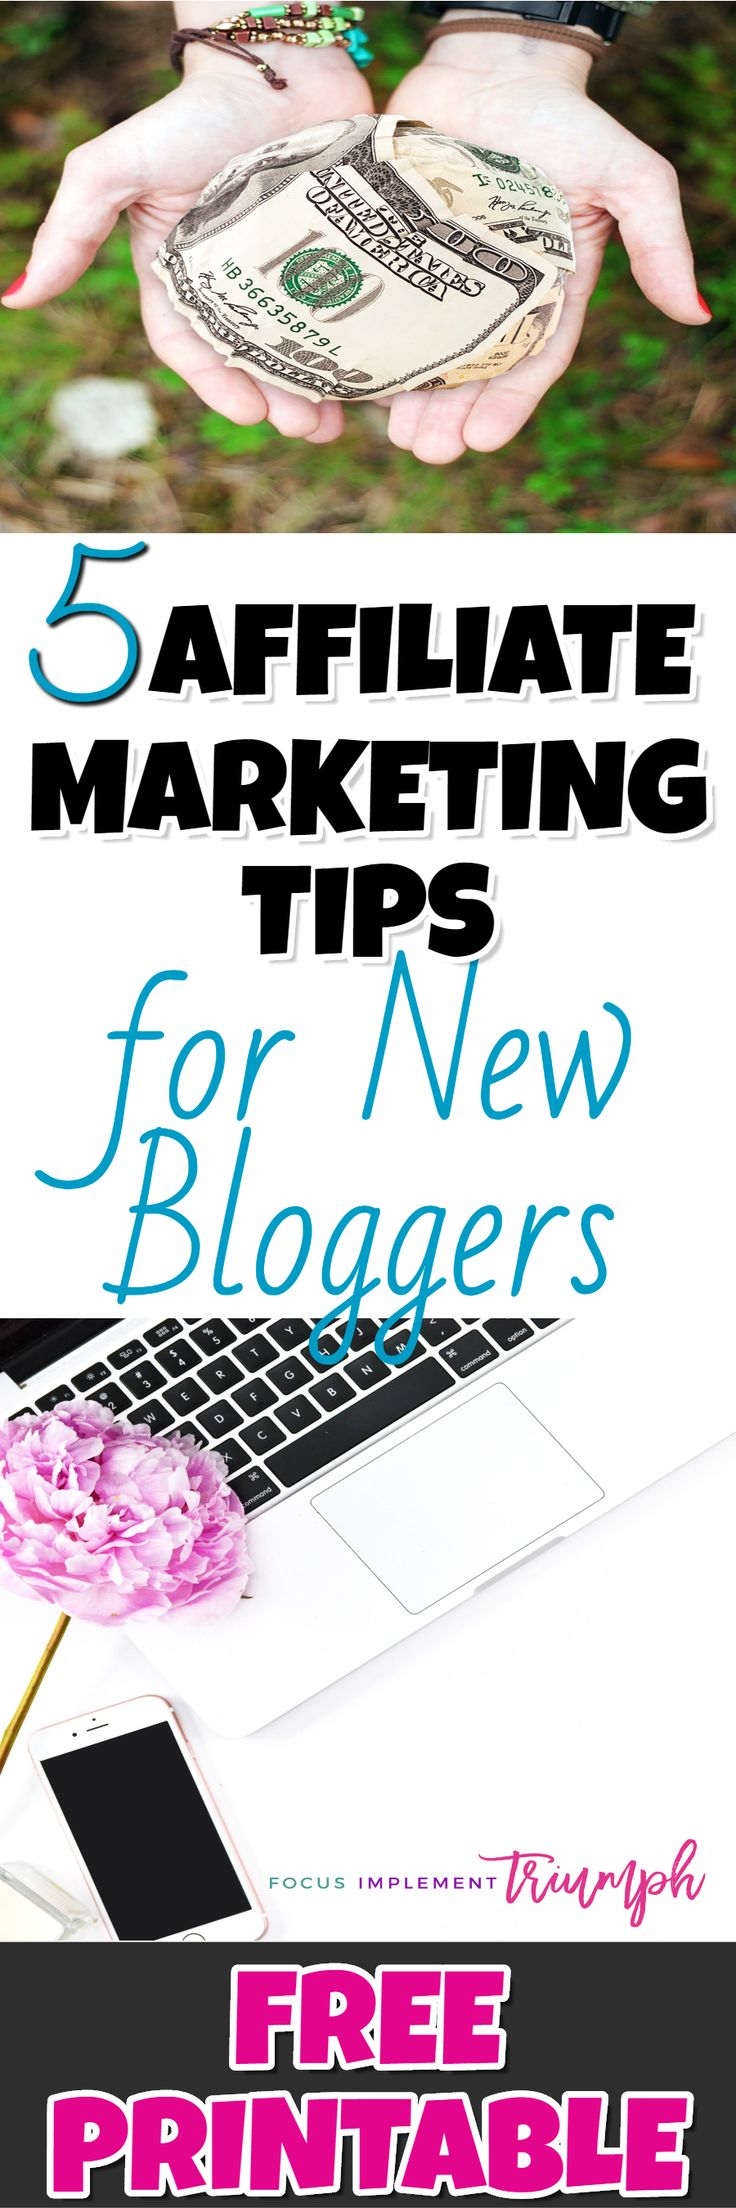 Are you struggling to earn money from your blog? This FREE Course + Quick Start Kit shares affiliate programs that you can join to start earning more money! | Make Money Blogging, make money blogging for beginners, make money blogging fast, how to make money blogging, ways to make money blogging, affiliate marketing to make money blogging #affiliatemarketing #affiliatemarketingforbeginners #affiliateprograms #blog #bloggingtips #blogginglikeaboss  #blogger #website #wordpress